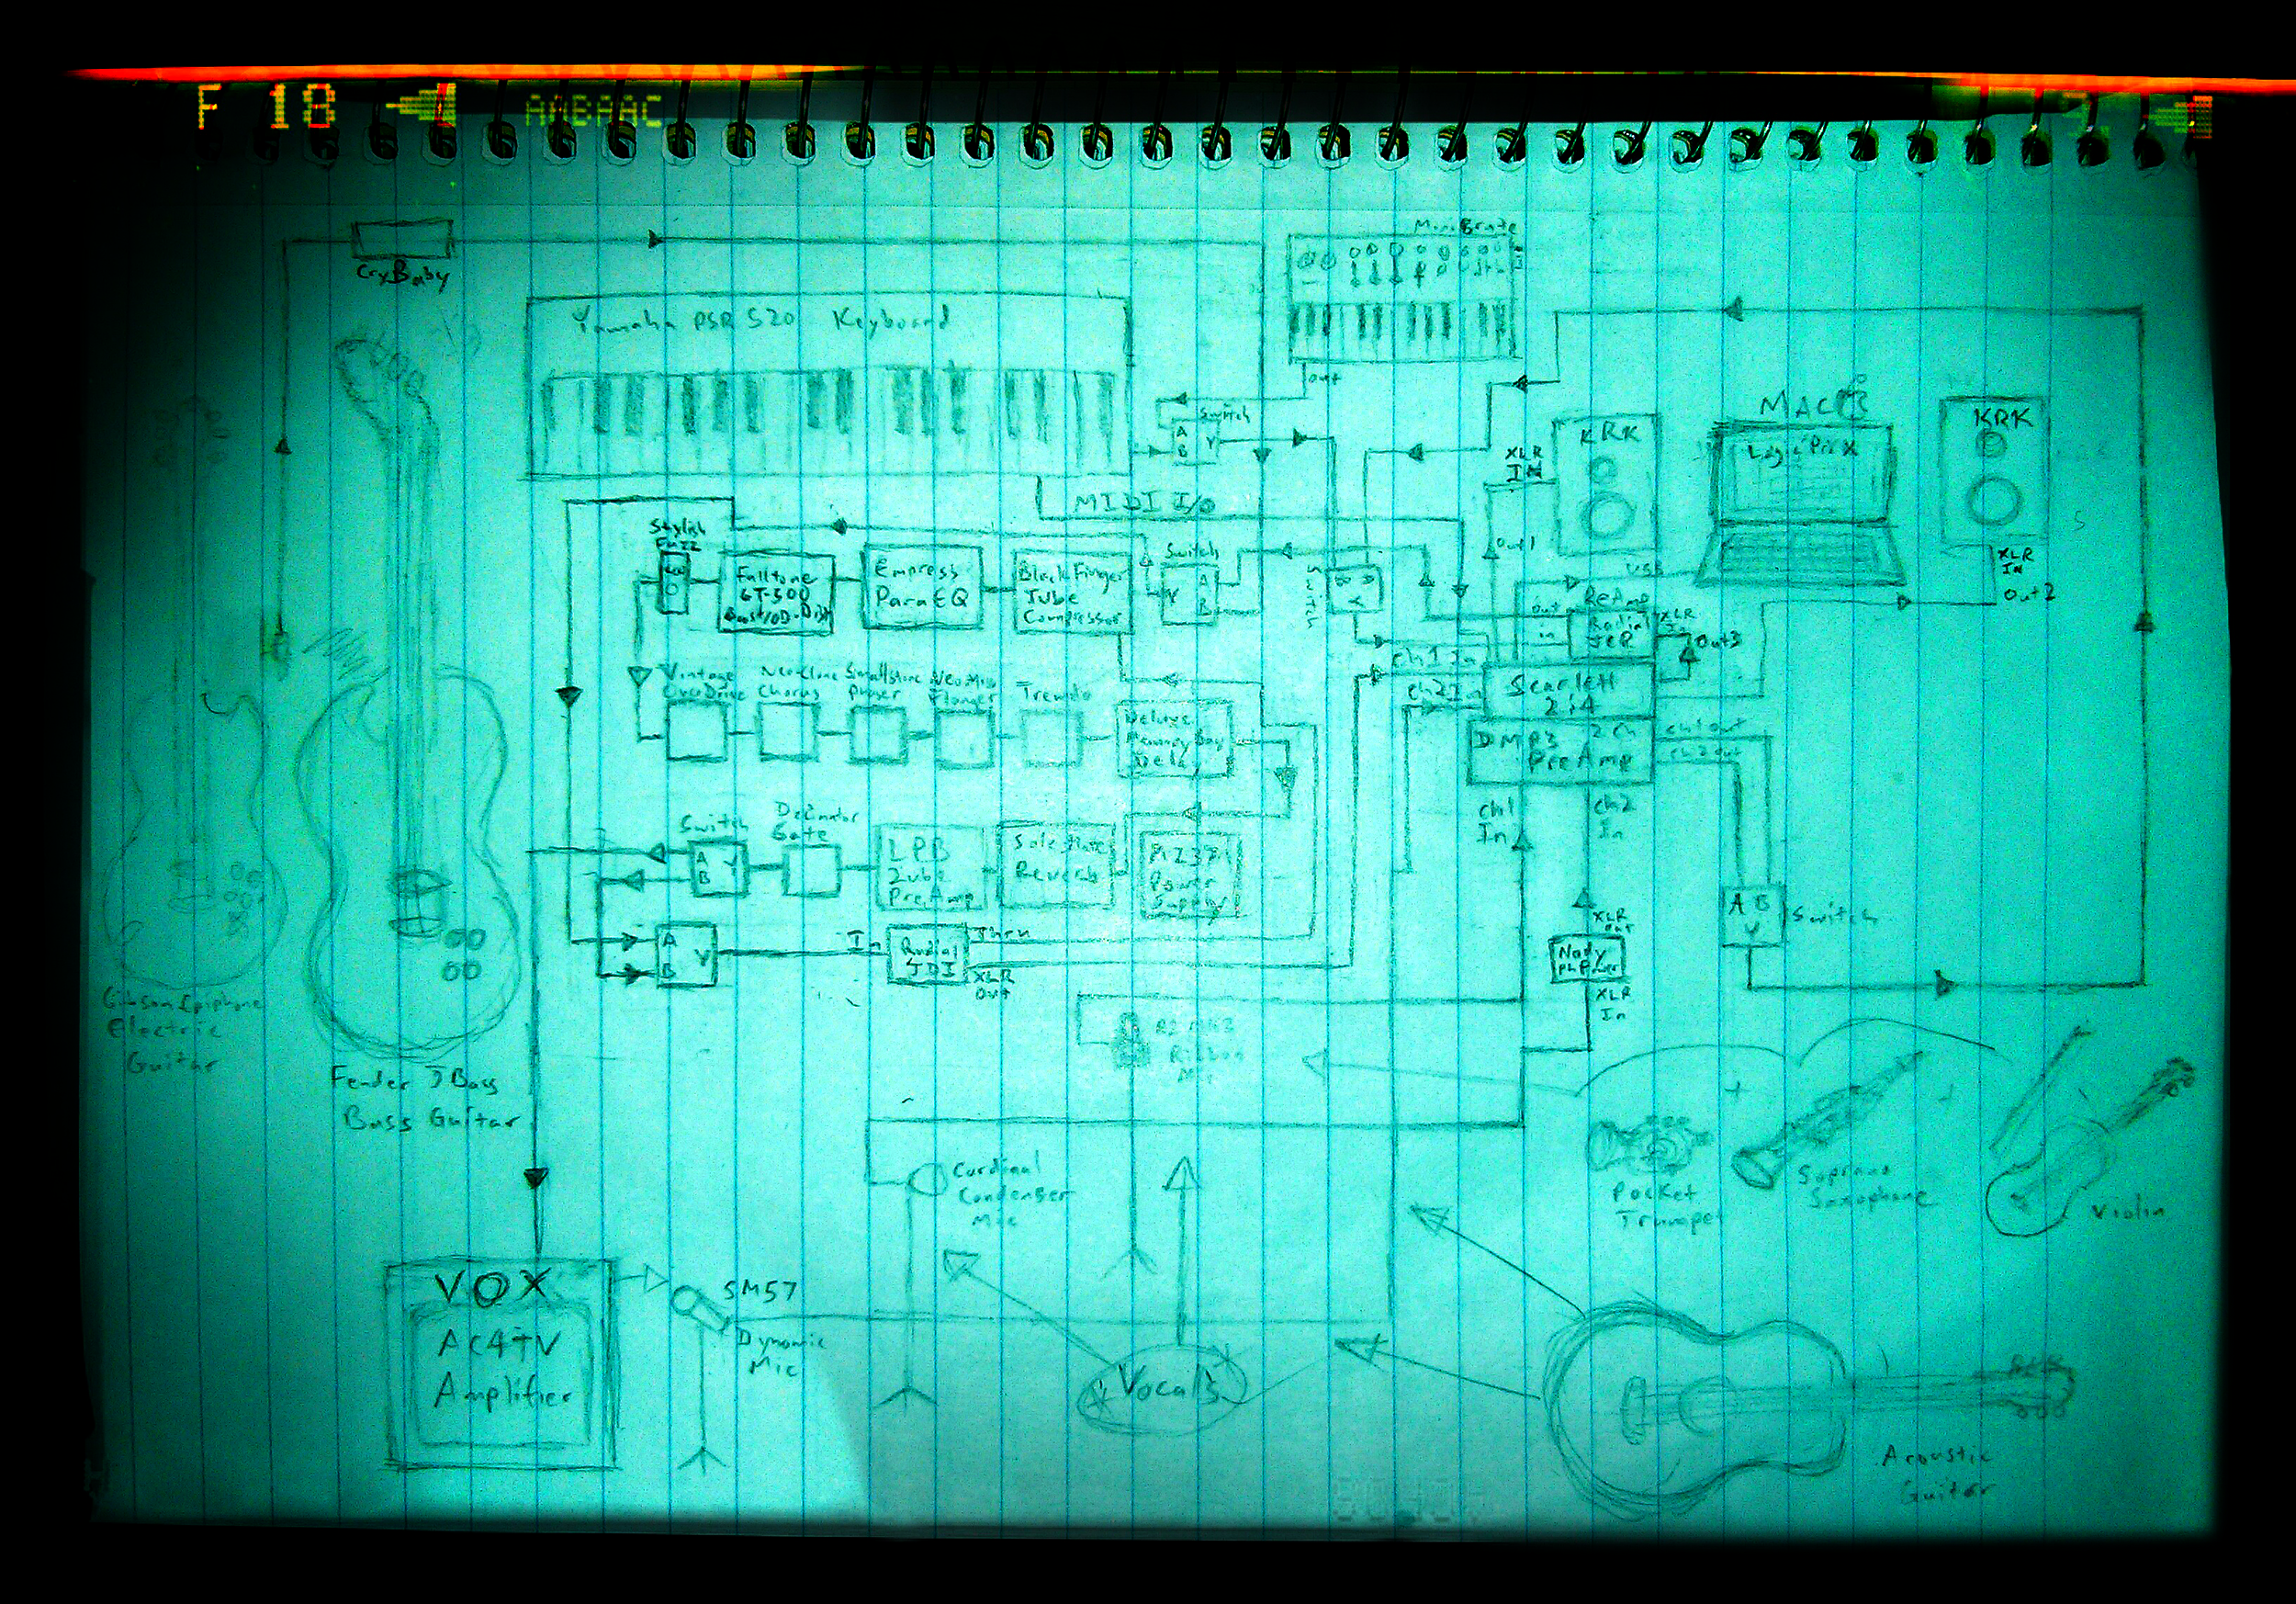 Early schematics of analog signal chain